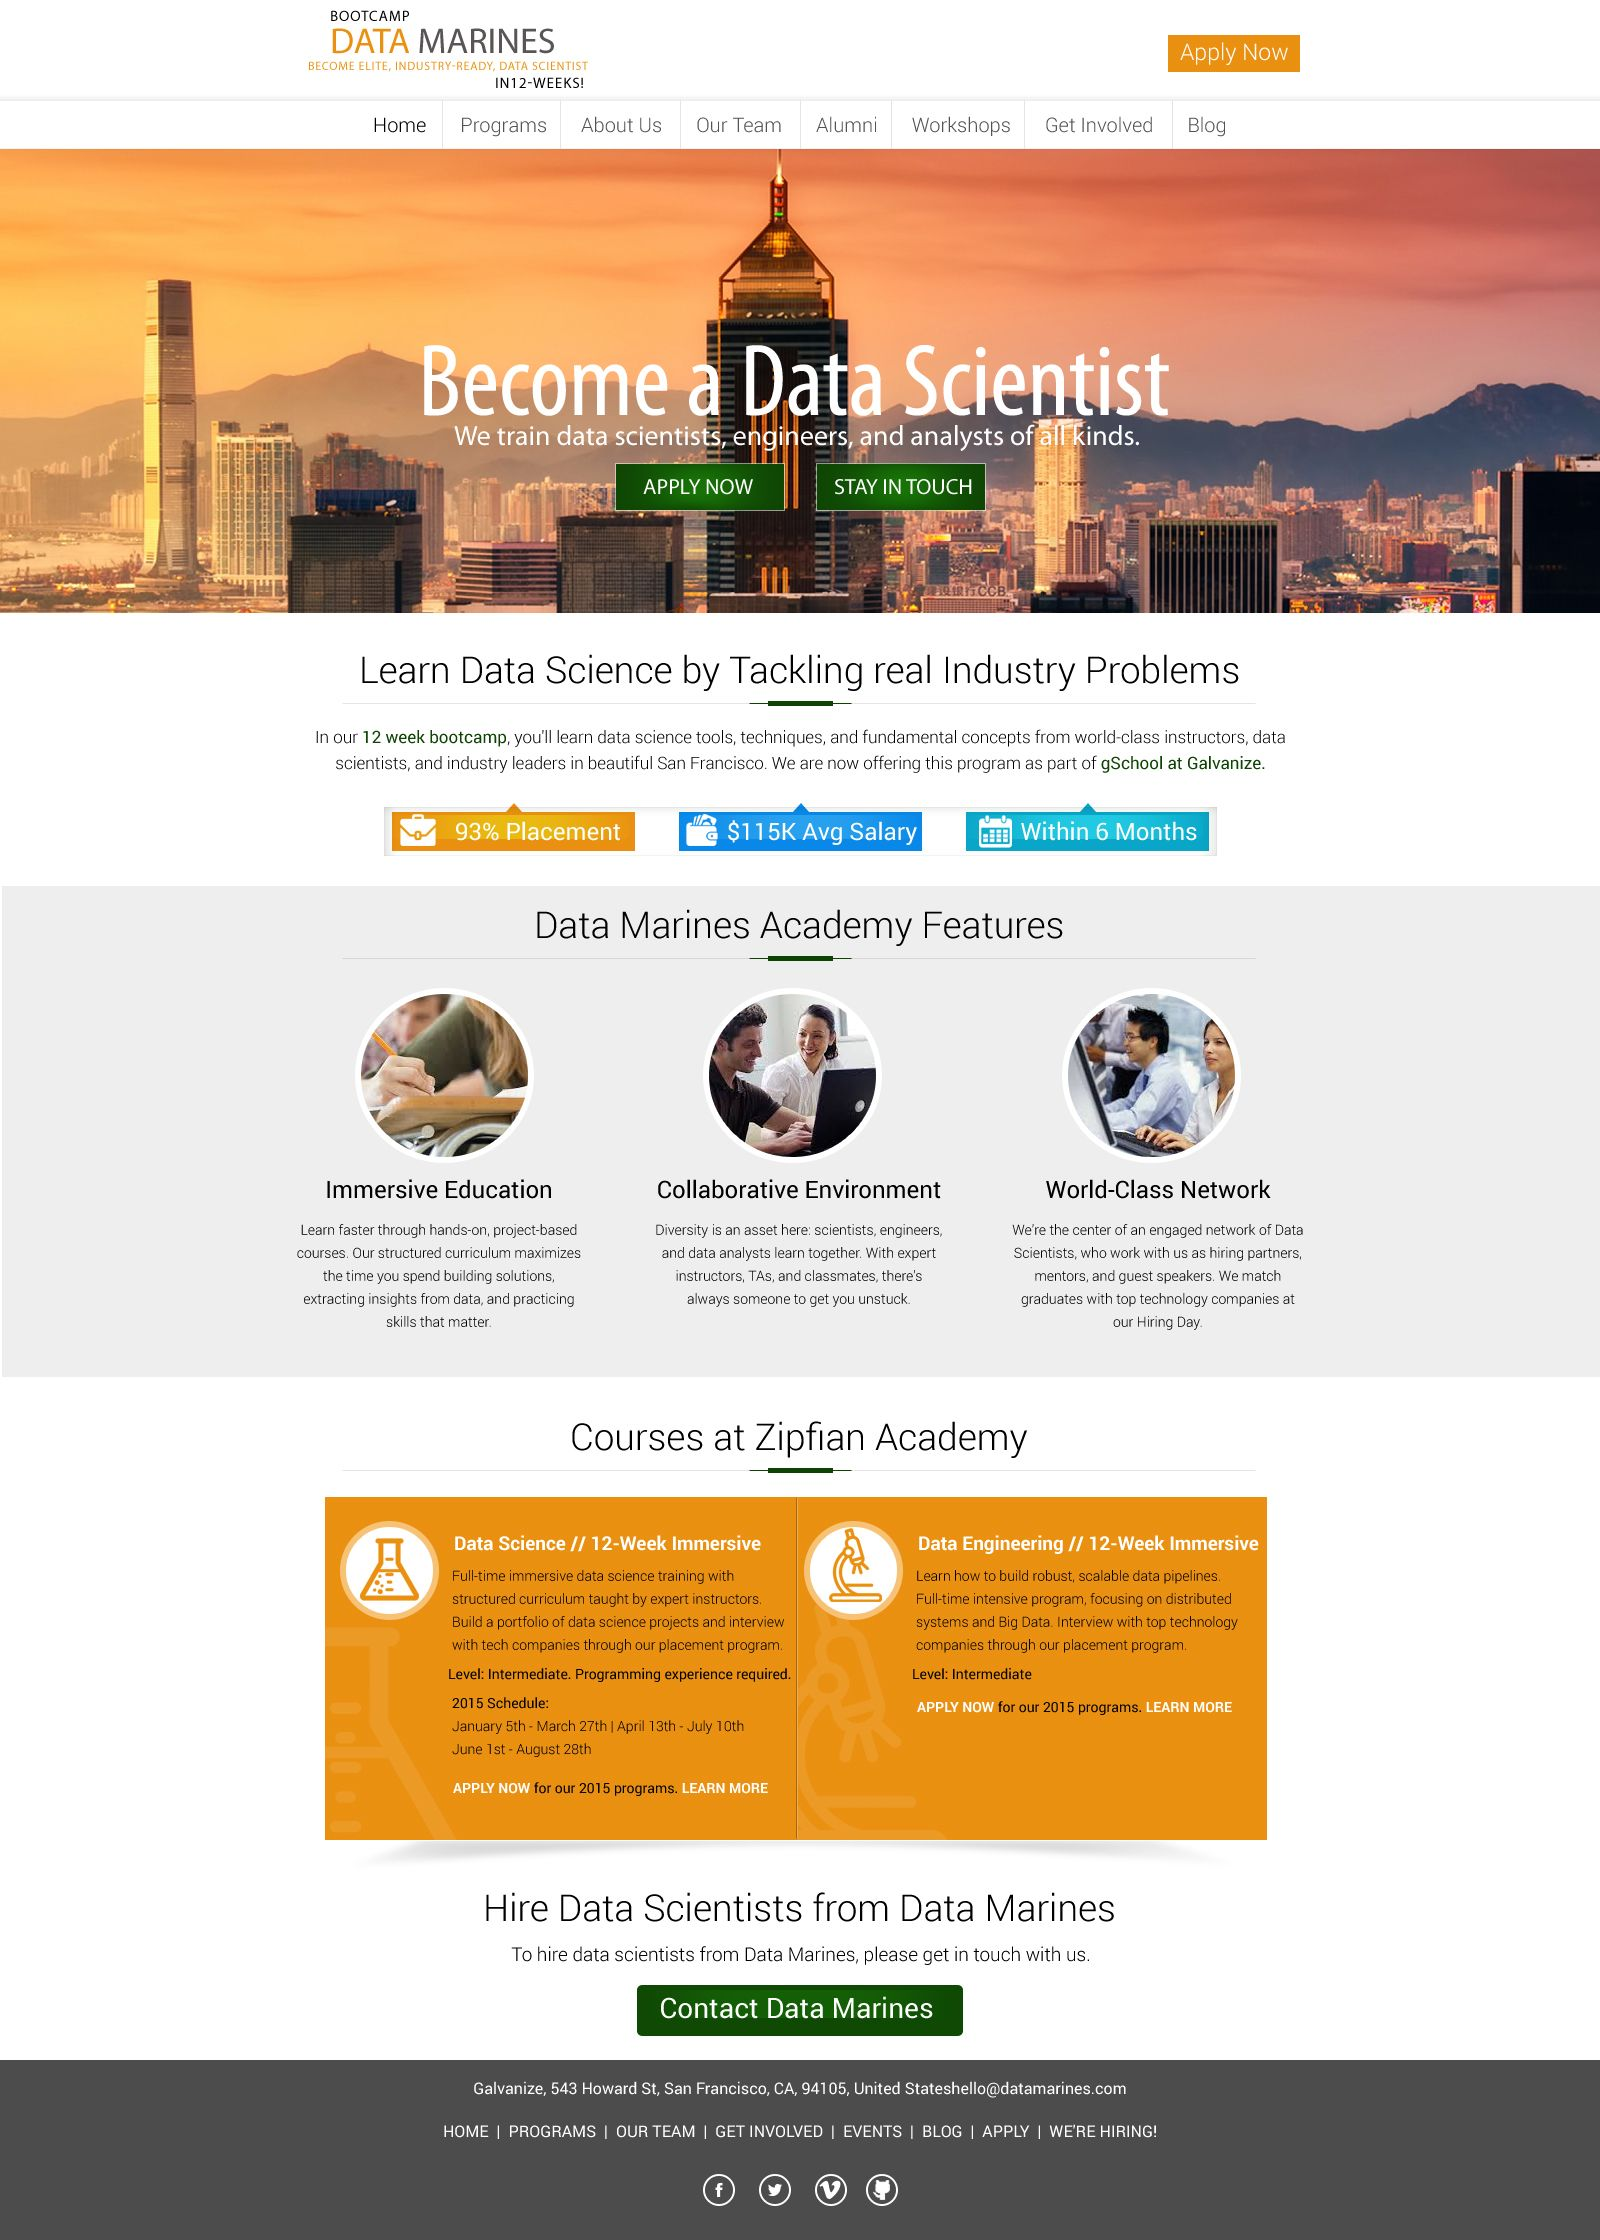 Academy institute website template design | DINA NATH SHAW TEMPLATE ...